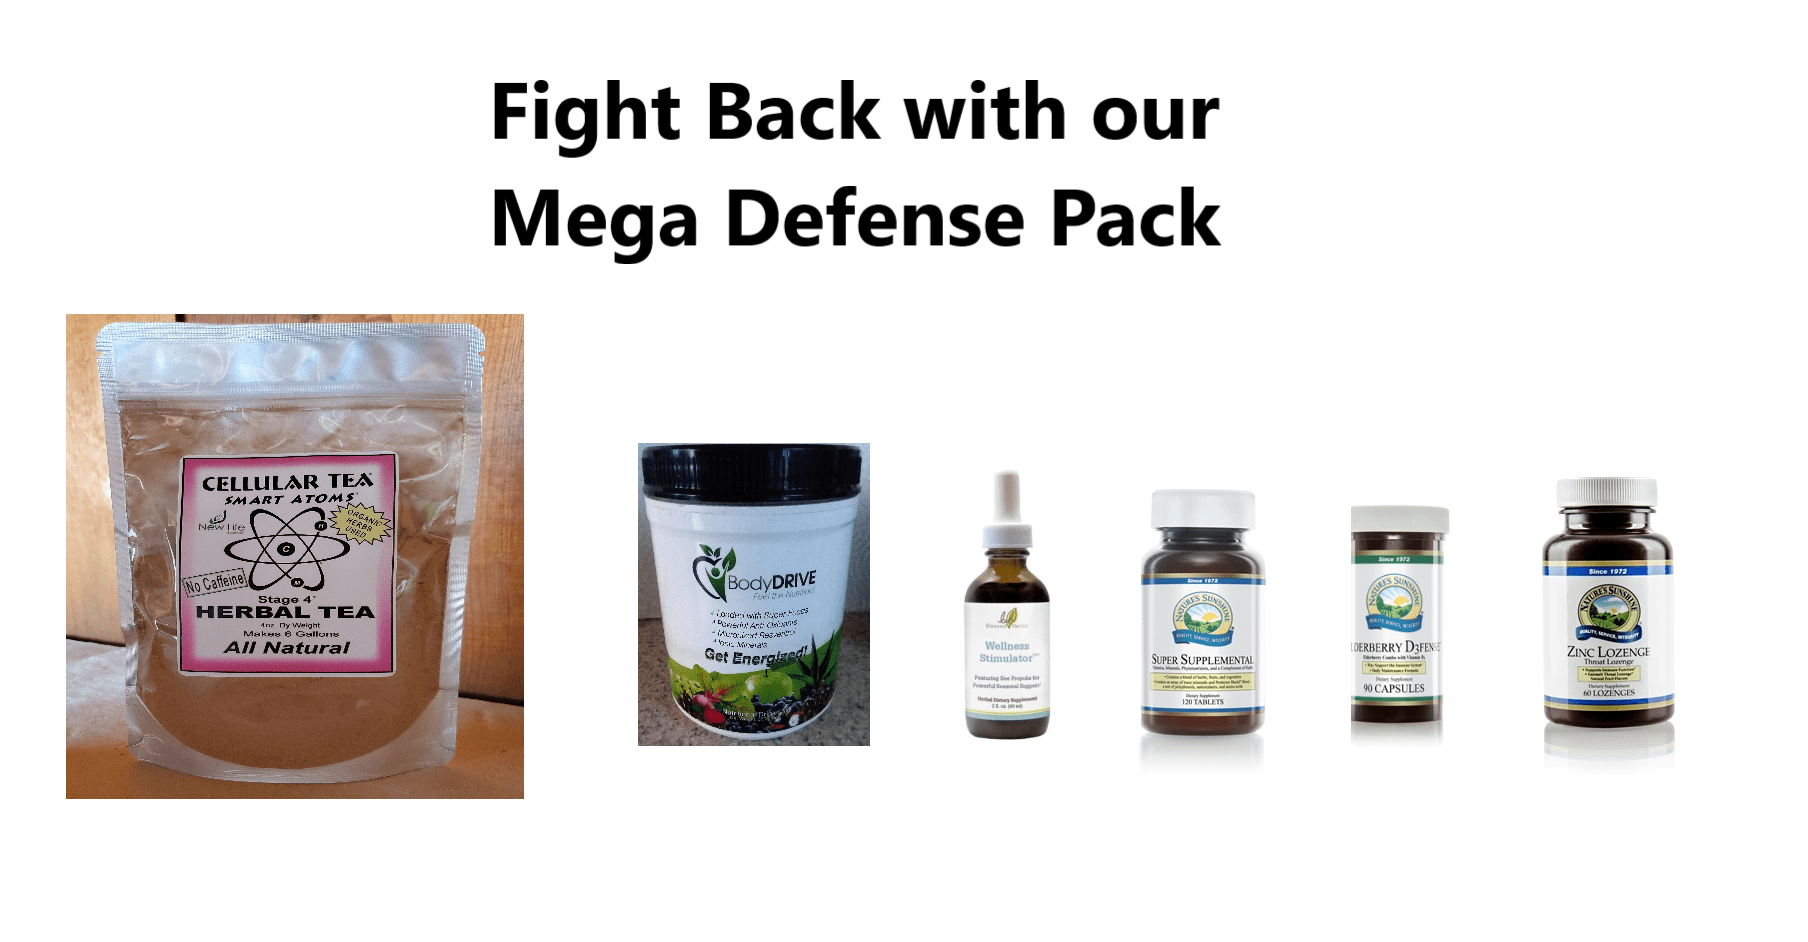 Mega Defense Immune System Builder